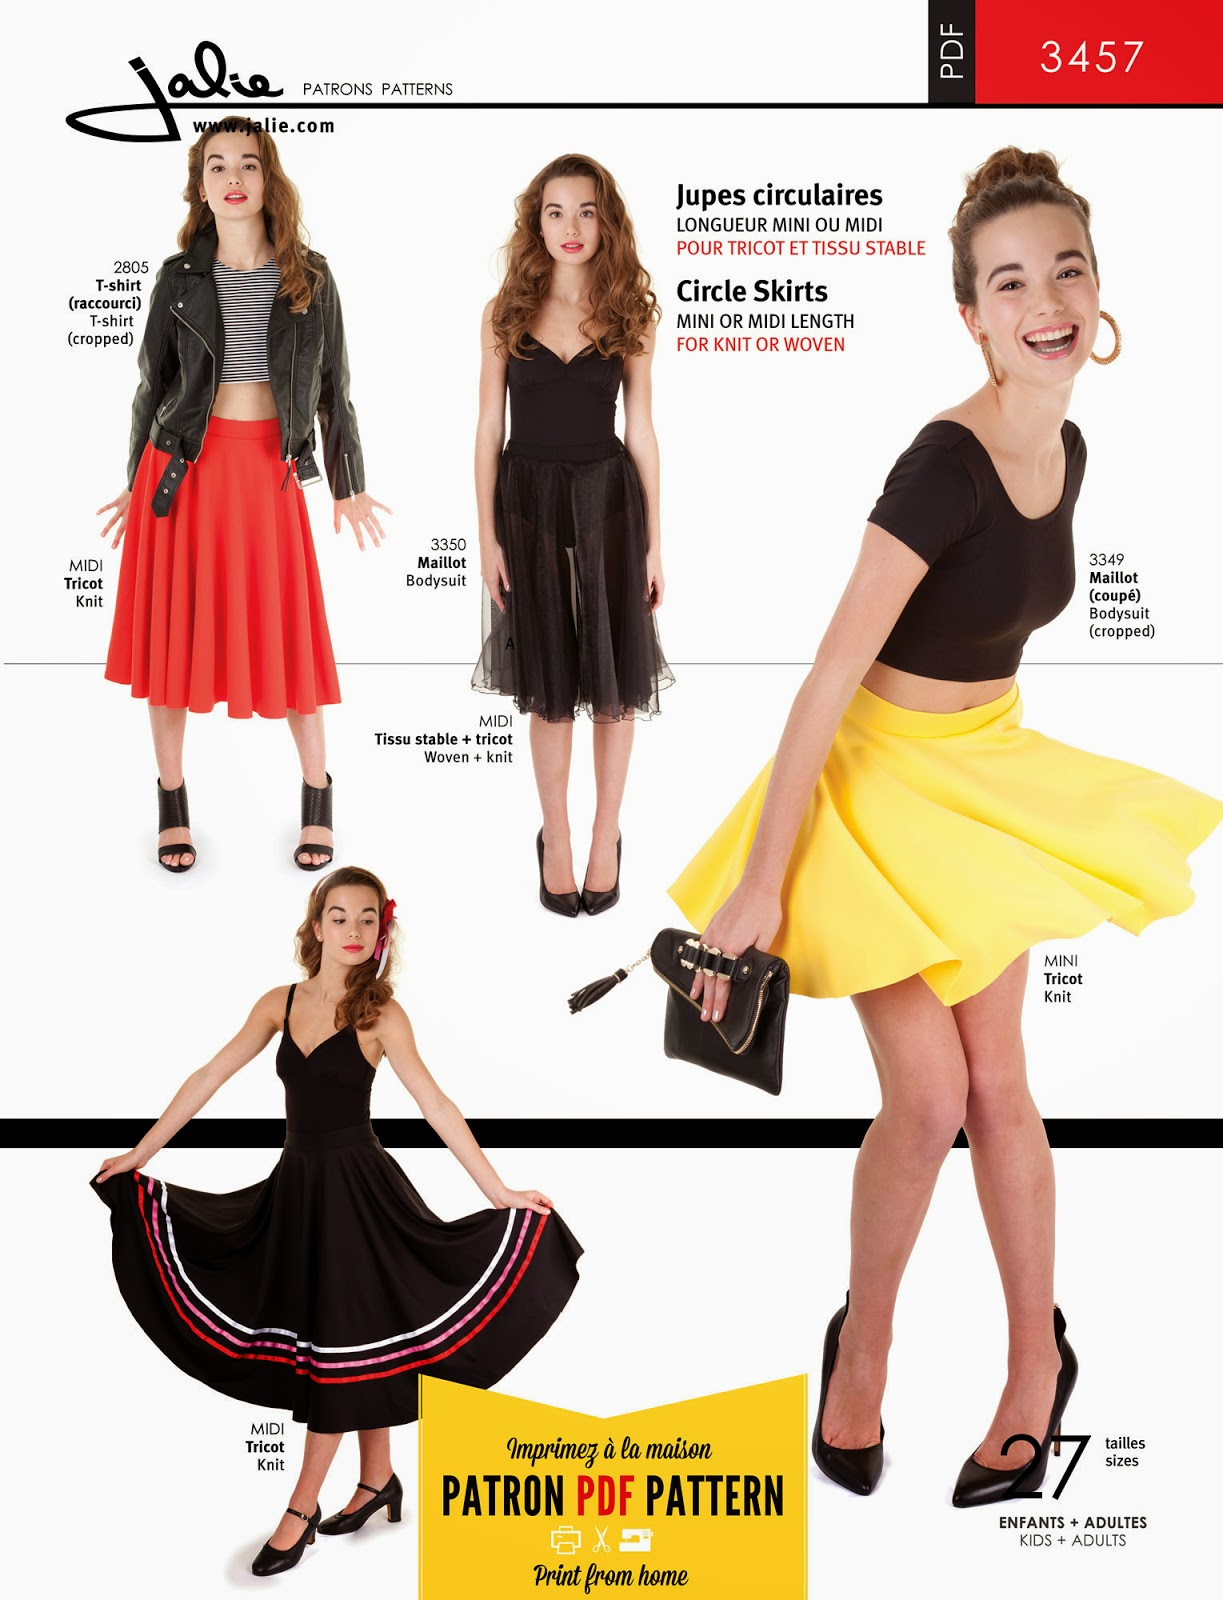 11 new patterns now available jalie 3457 circle skirts bankloansurffo Image collections